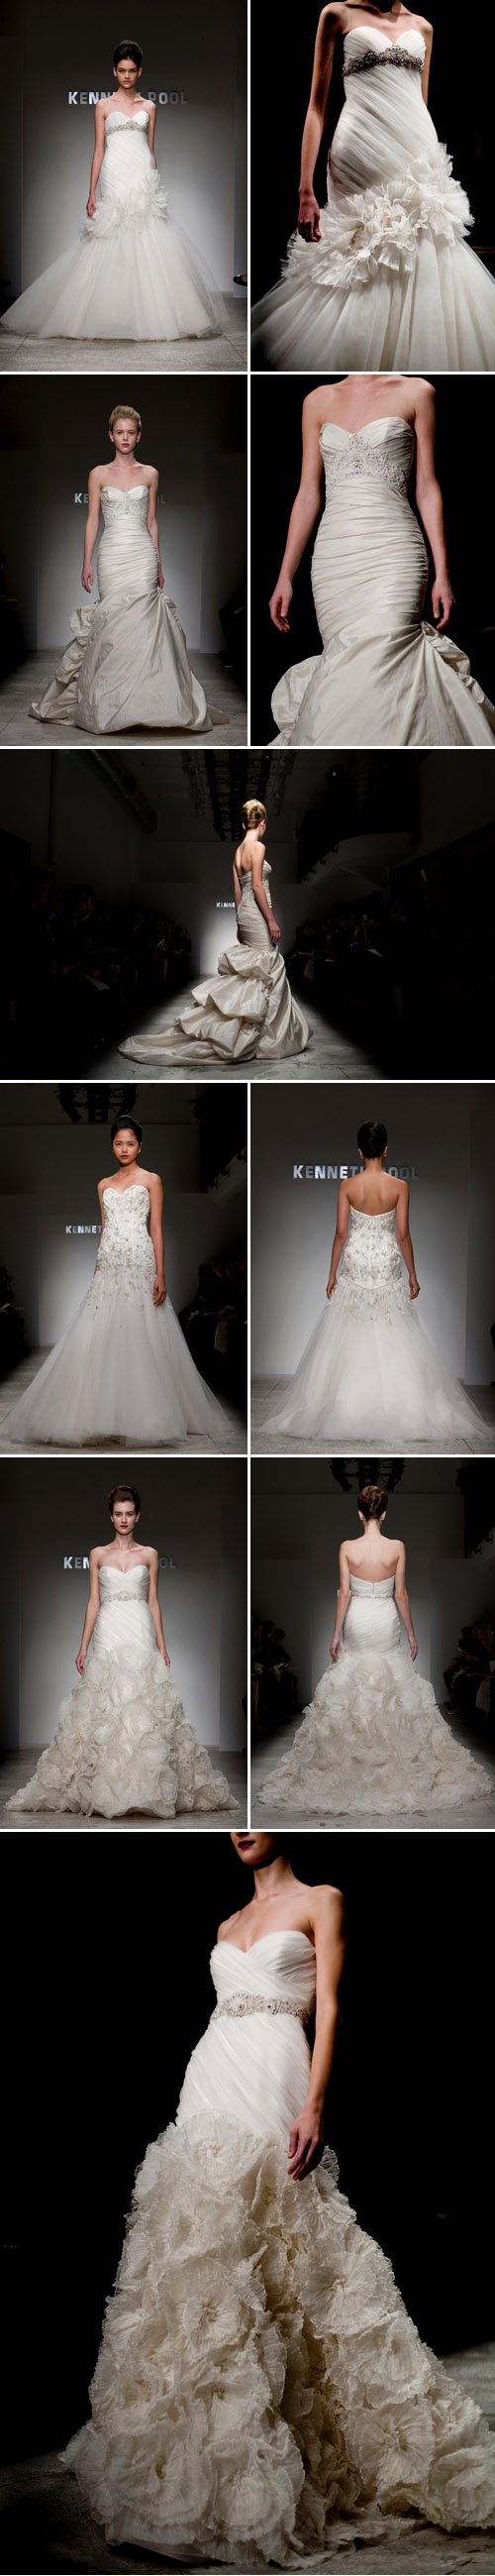 Kenneth Pool spring 2011 wedding dress collection, New York Bridal Market, photos by John and Joseph Photography